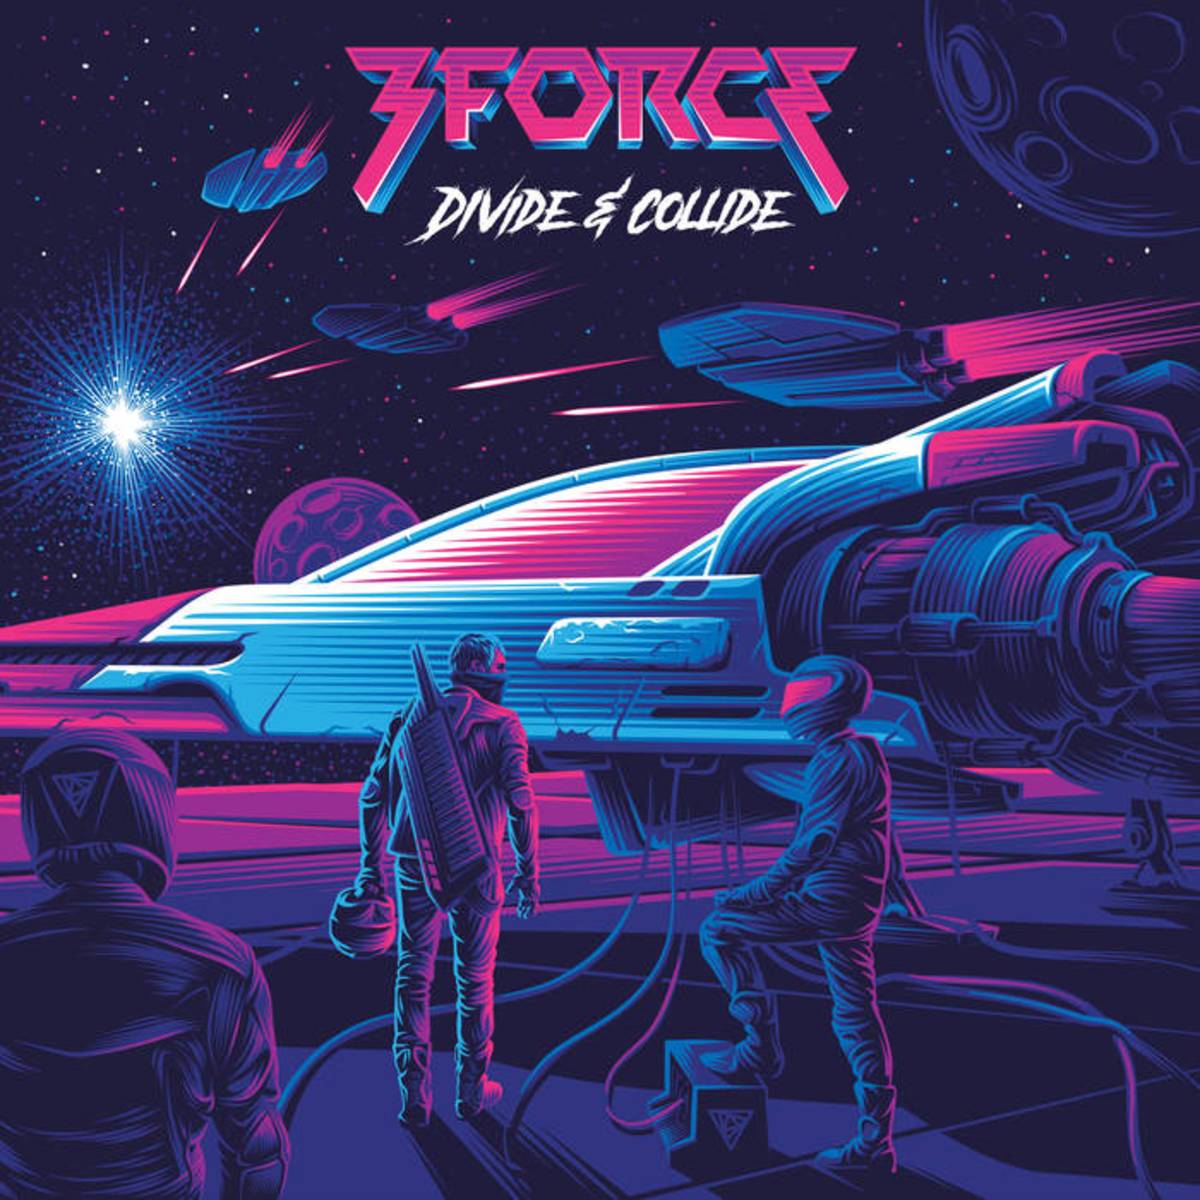 """Synth Album Review: 3Force, """"Divide & Collide"""""""